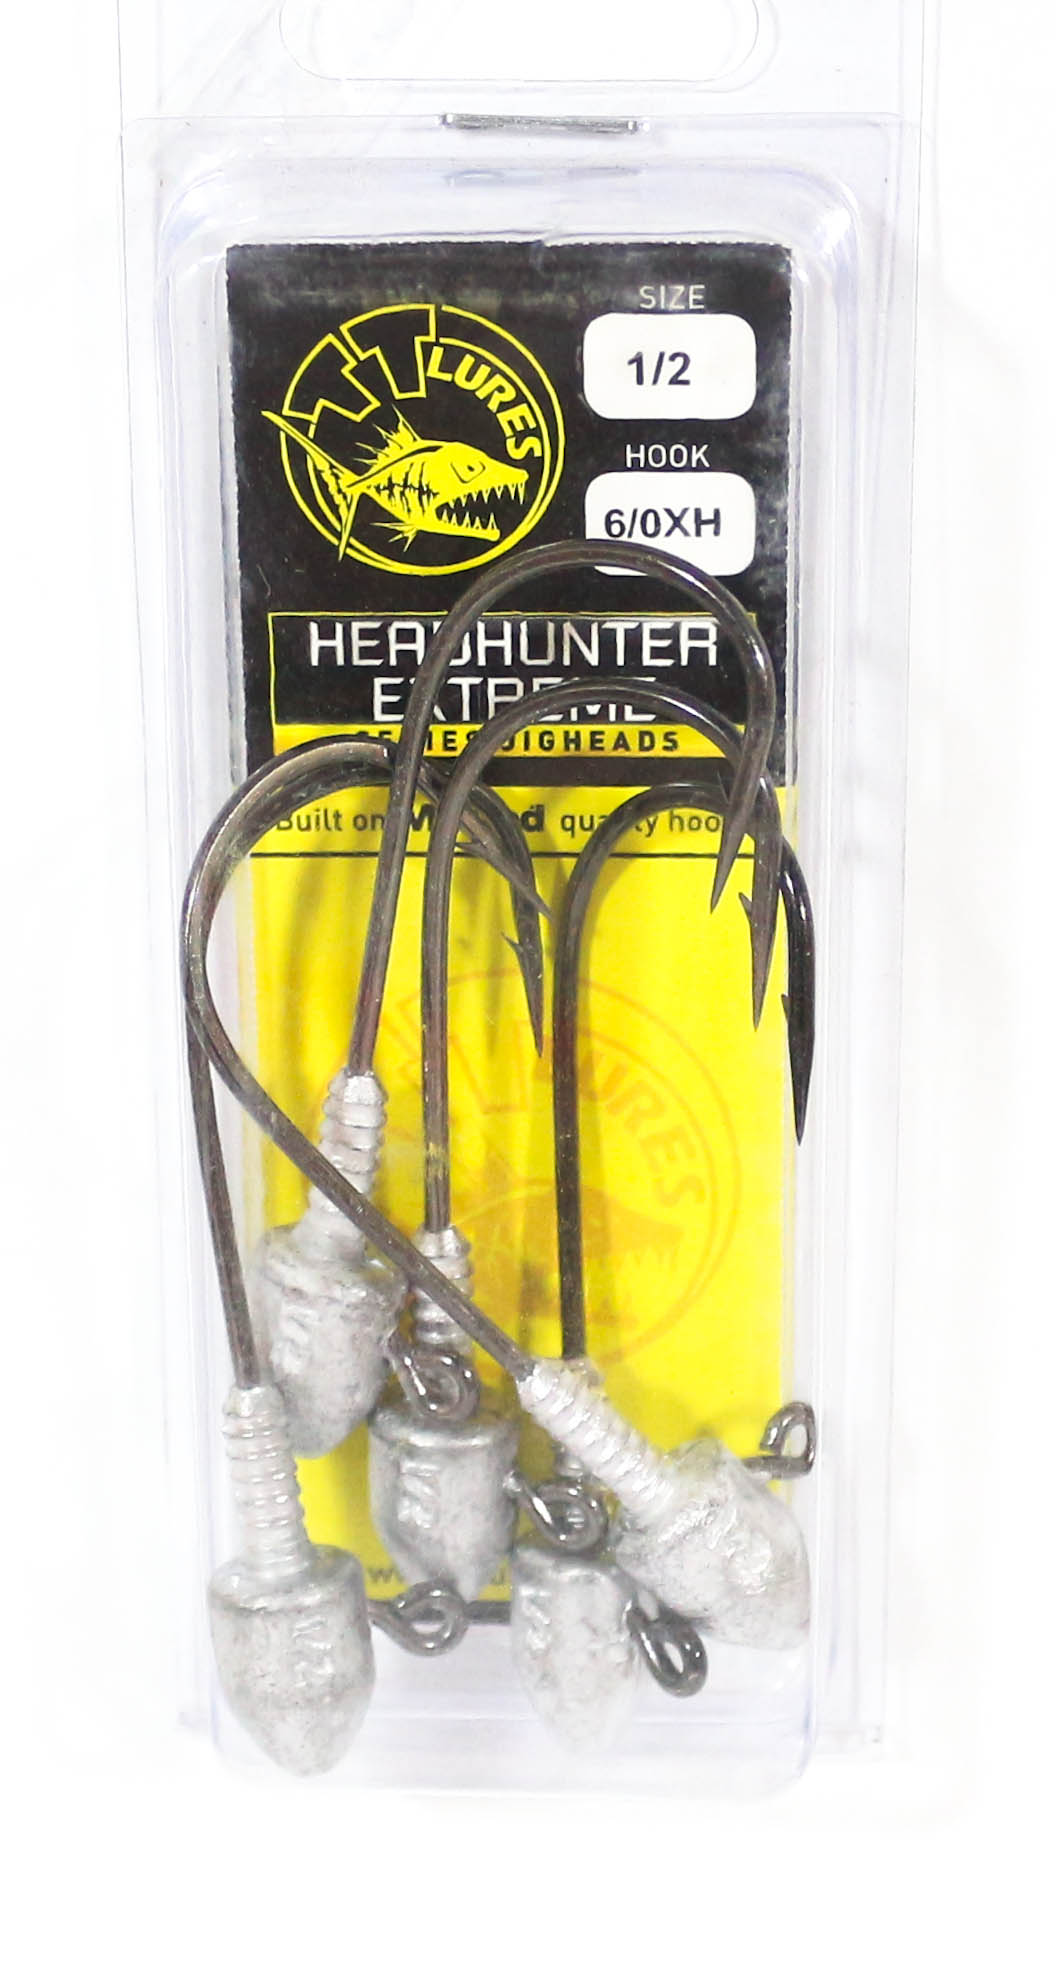 Tackle Tactics TT Head Hunter Extreme Jig Head 1/2 oz 6/0 XH 5 per pack (1357)